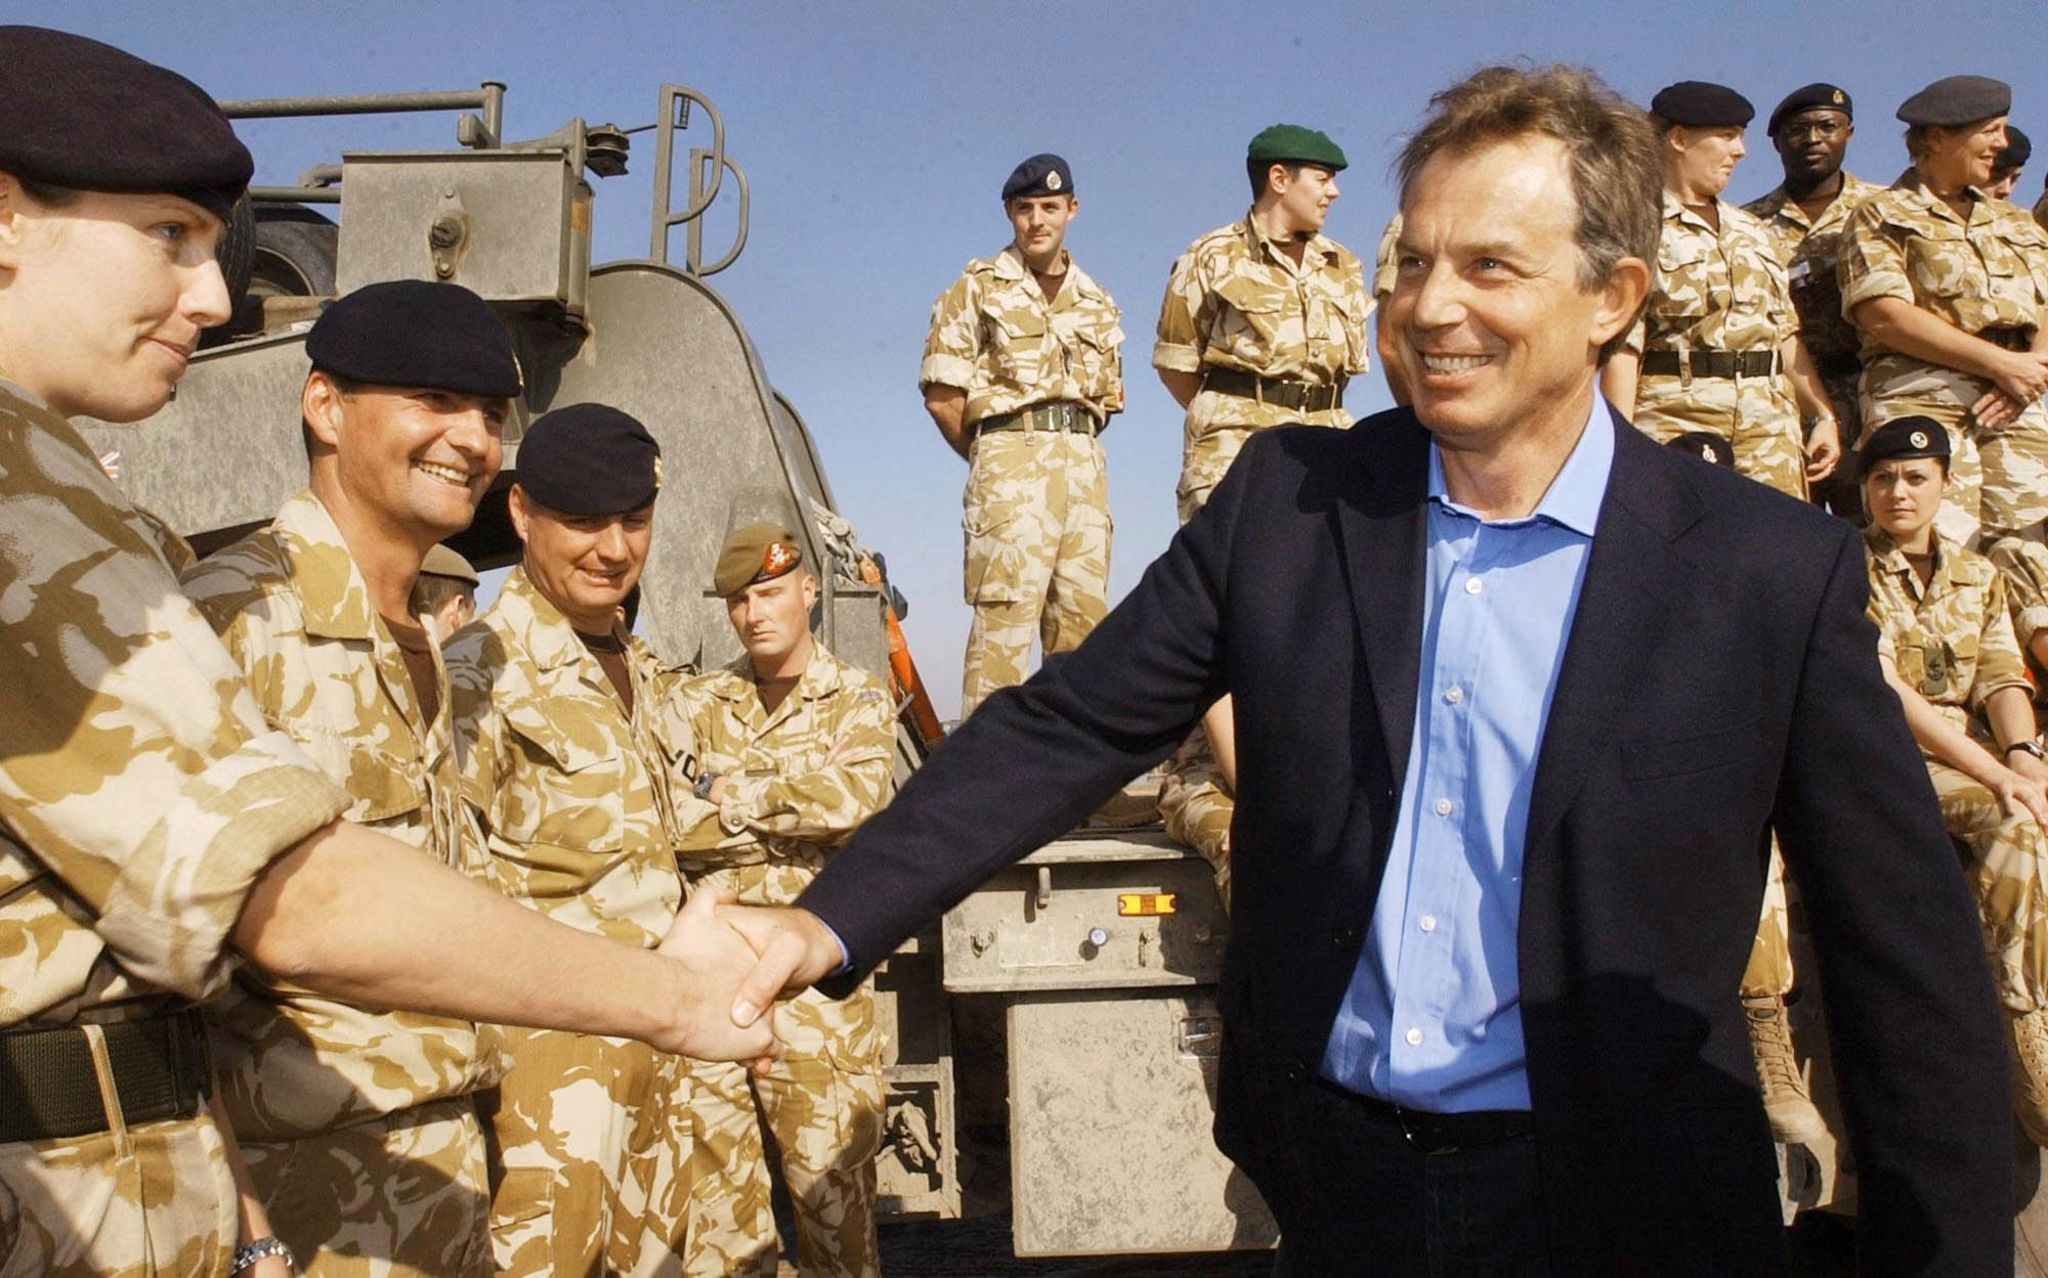 Tony Blair in Basra, southern Iraq, early 2004